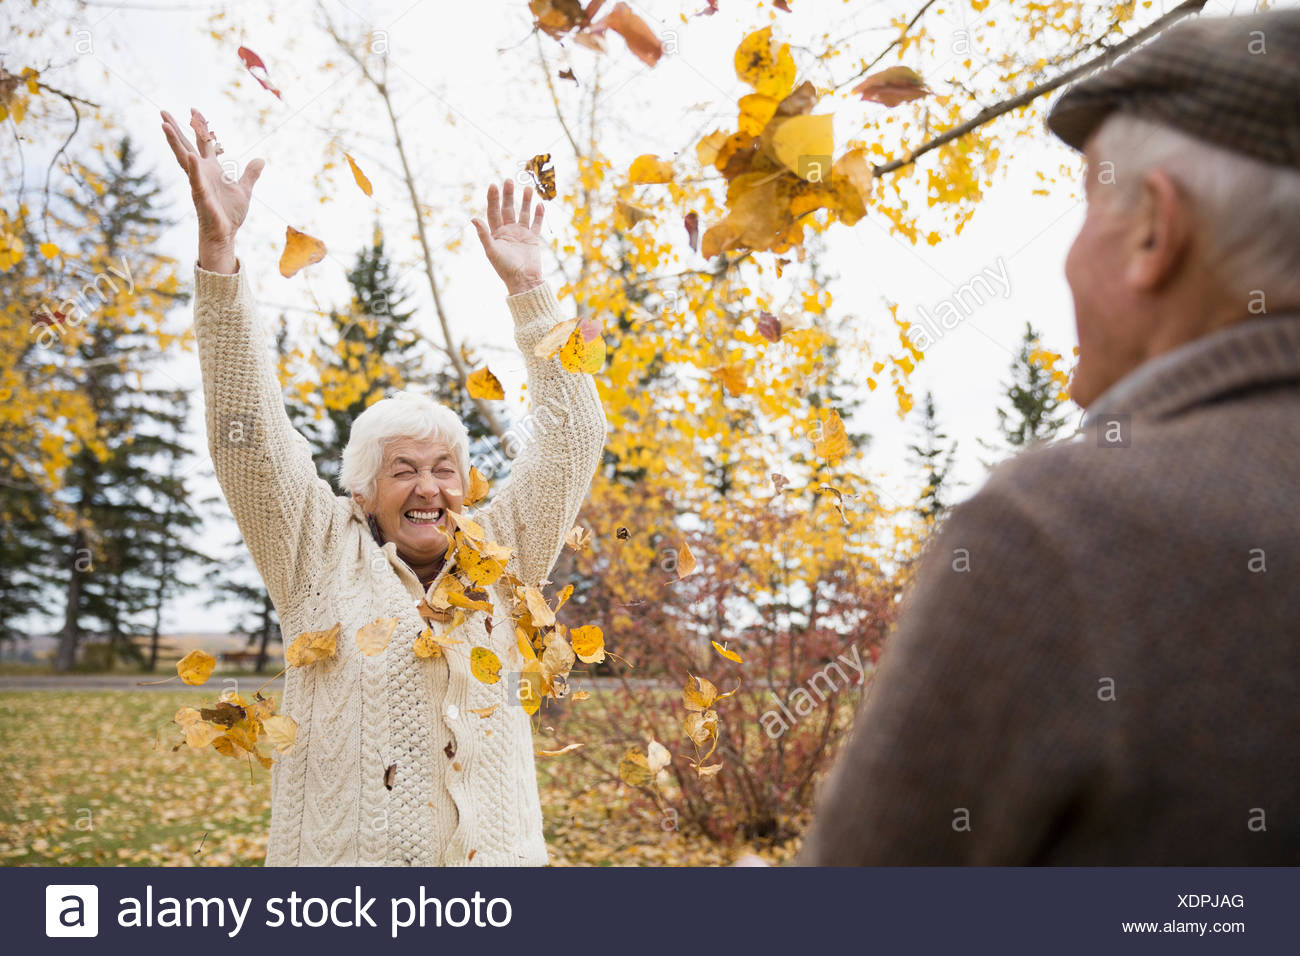 Playful senior couple throwing autumn leaves overhead in park - Stock Image